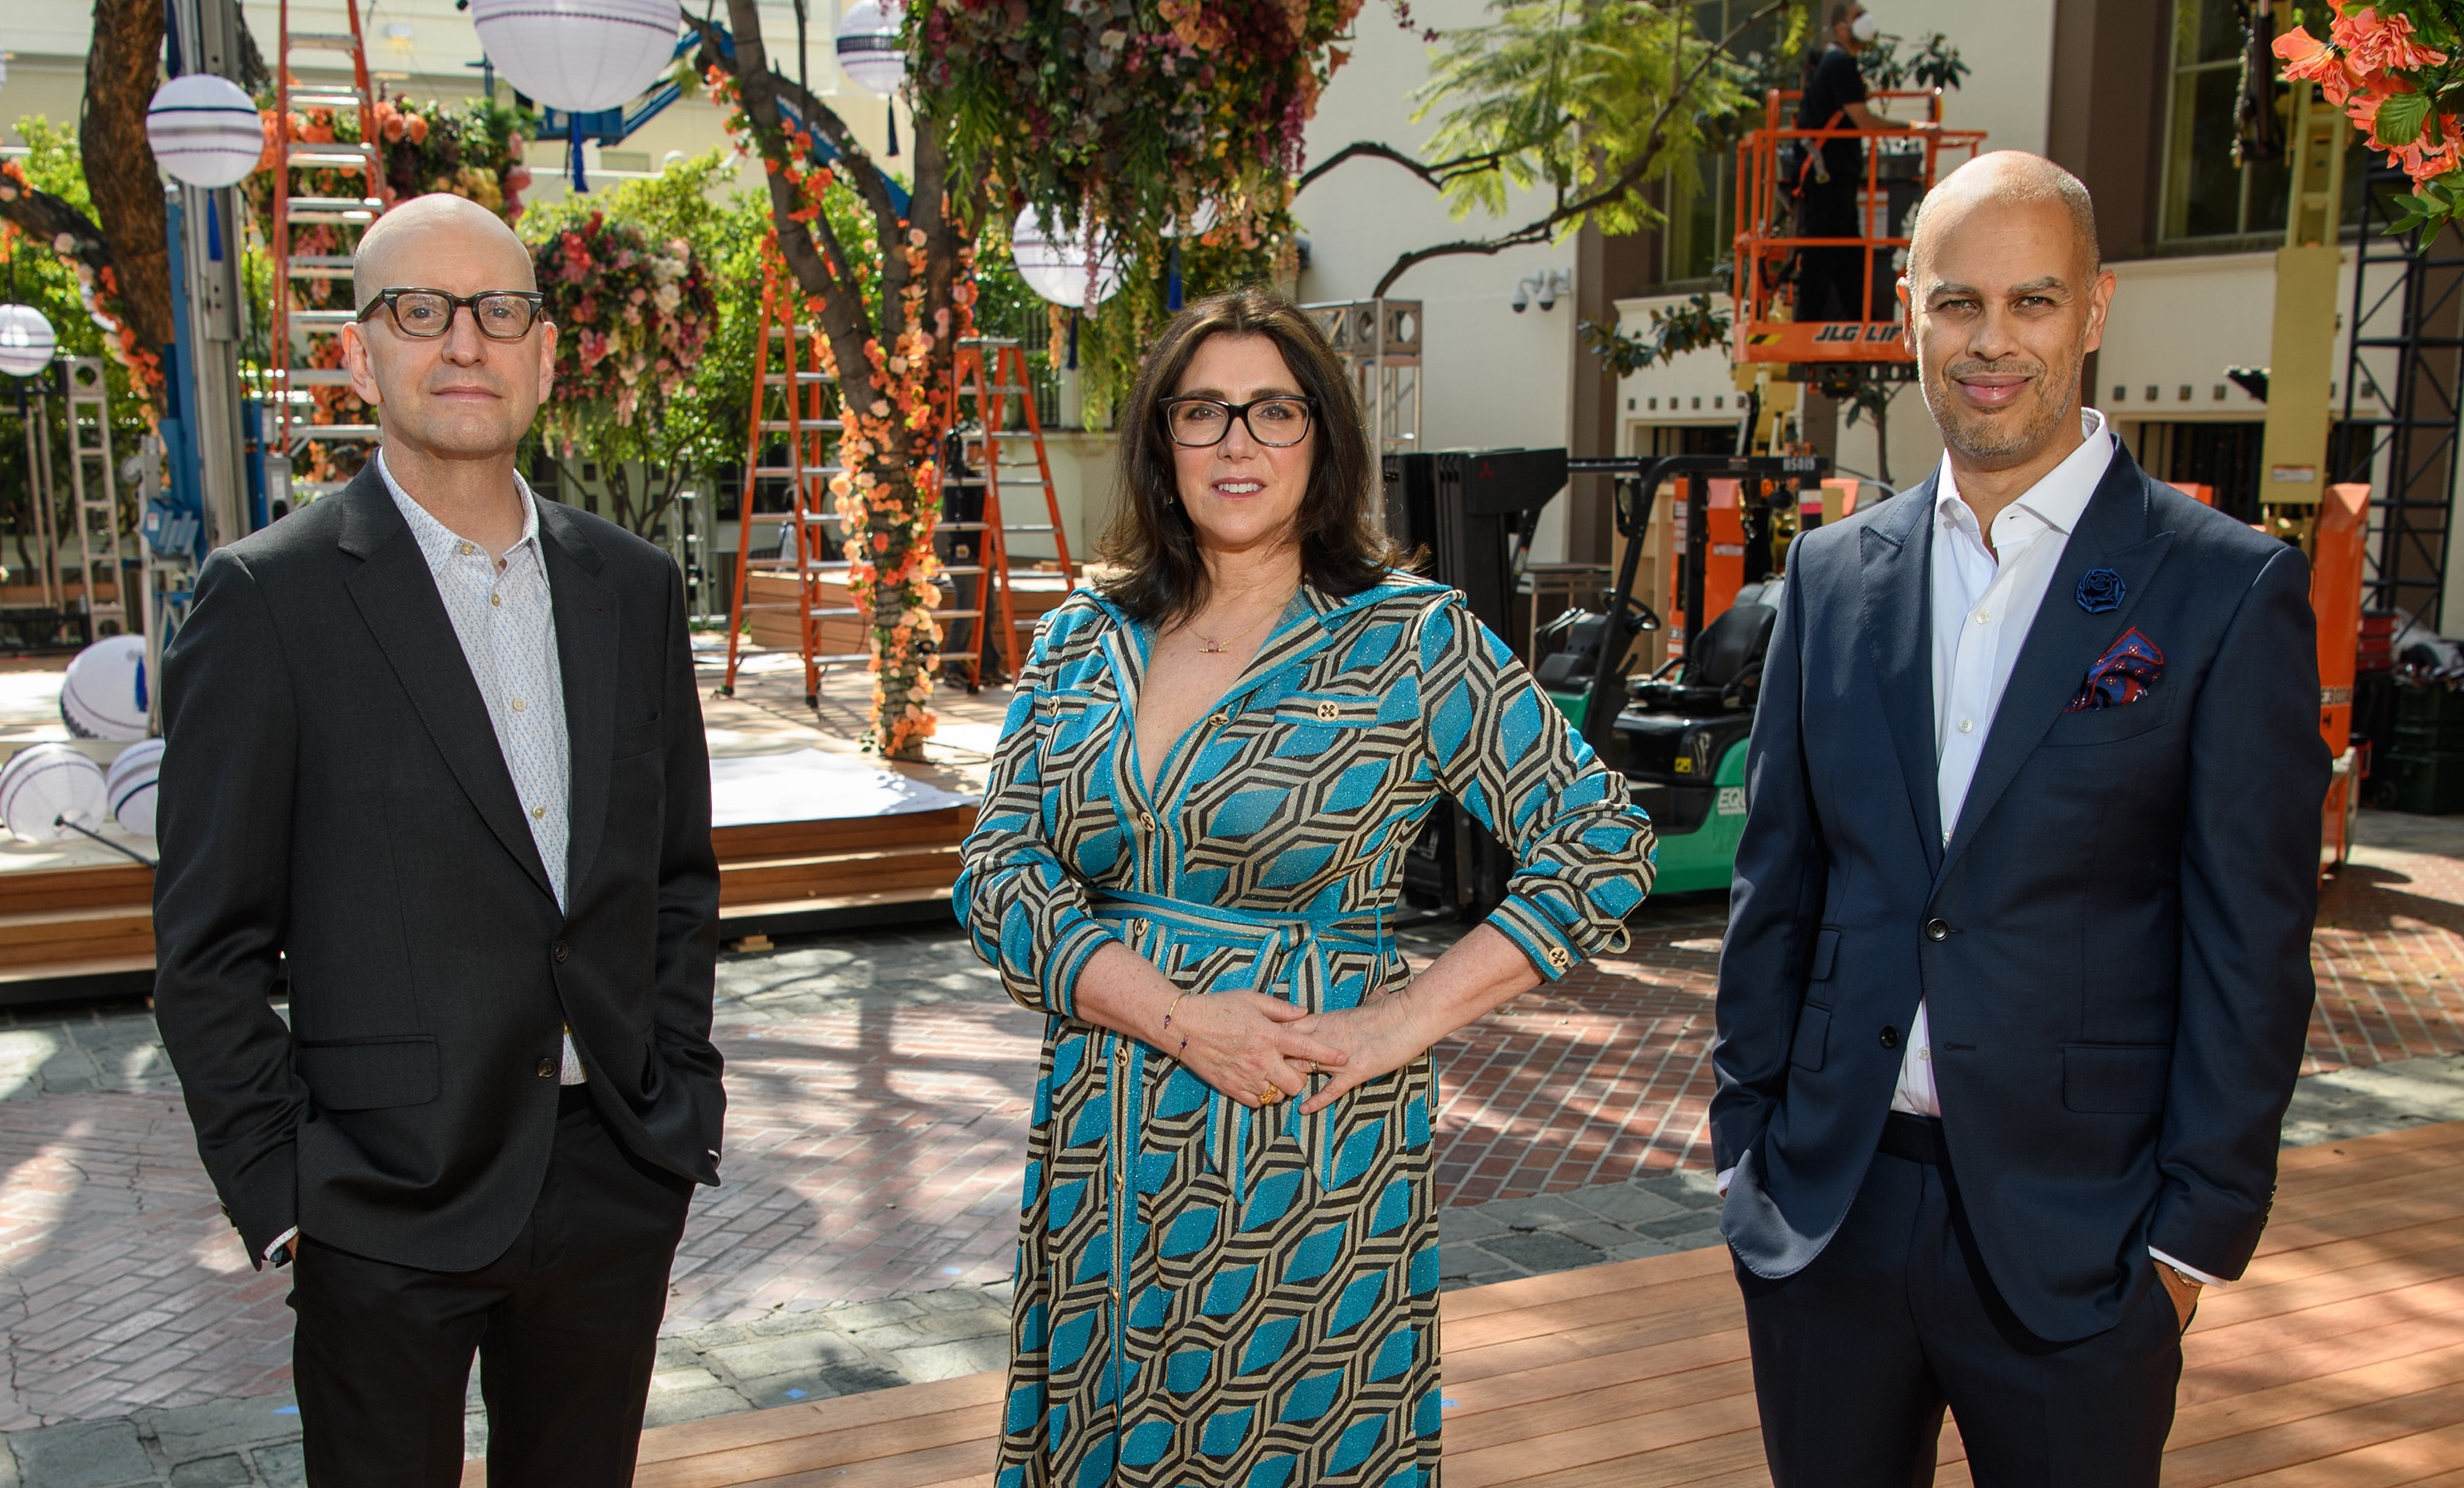 Steven Soderbergh, Stacey Sher, and Jesse Collins